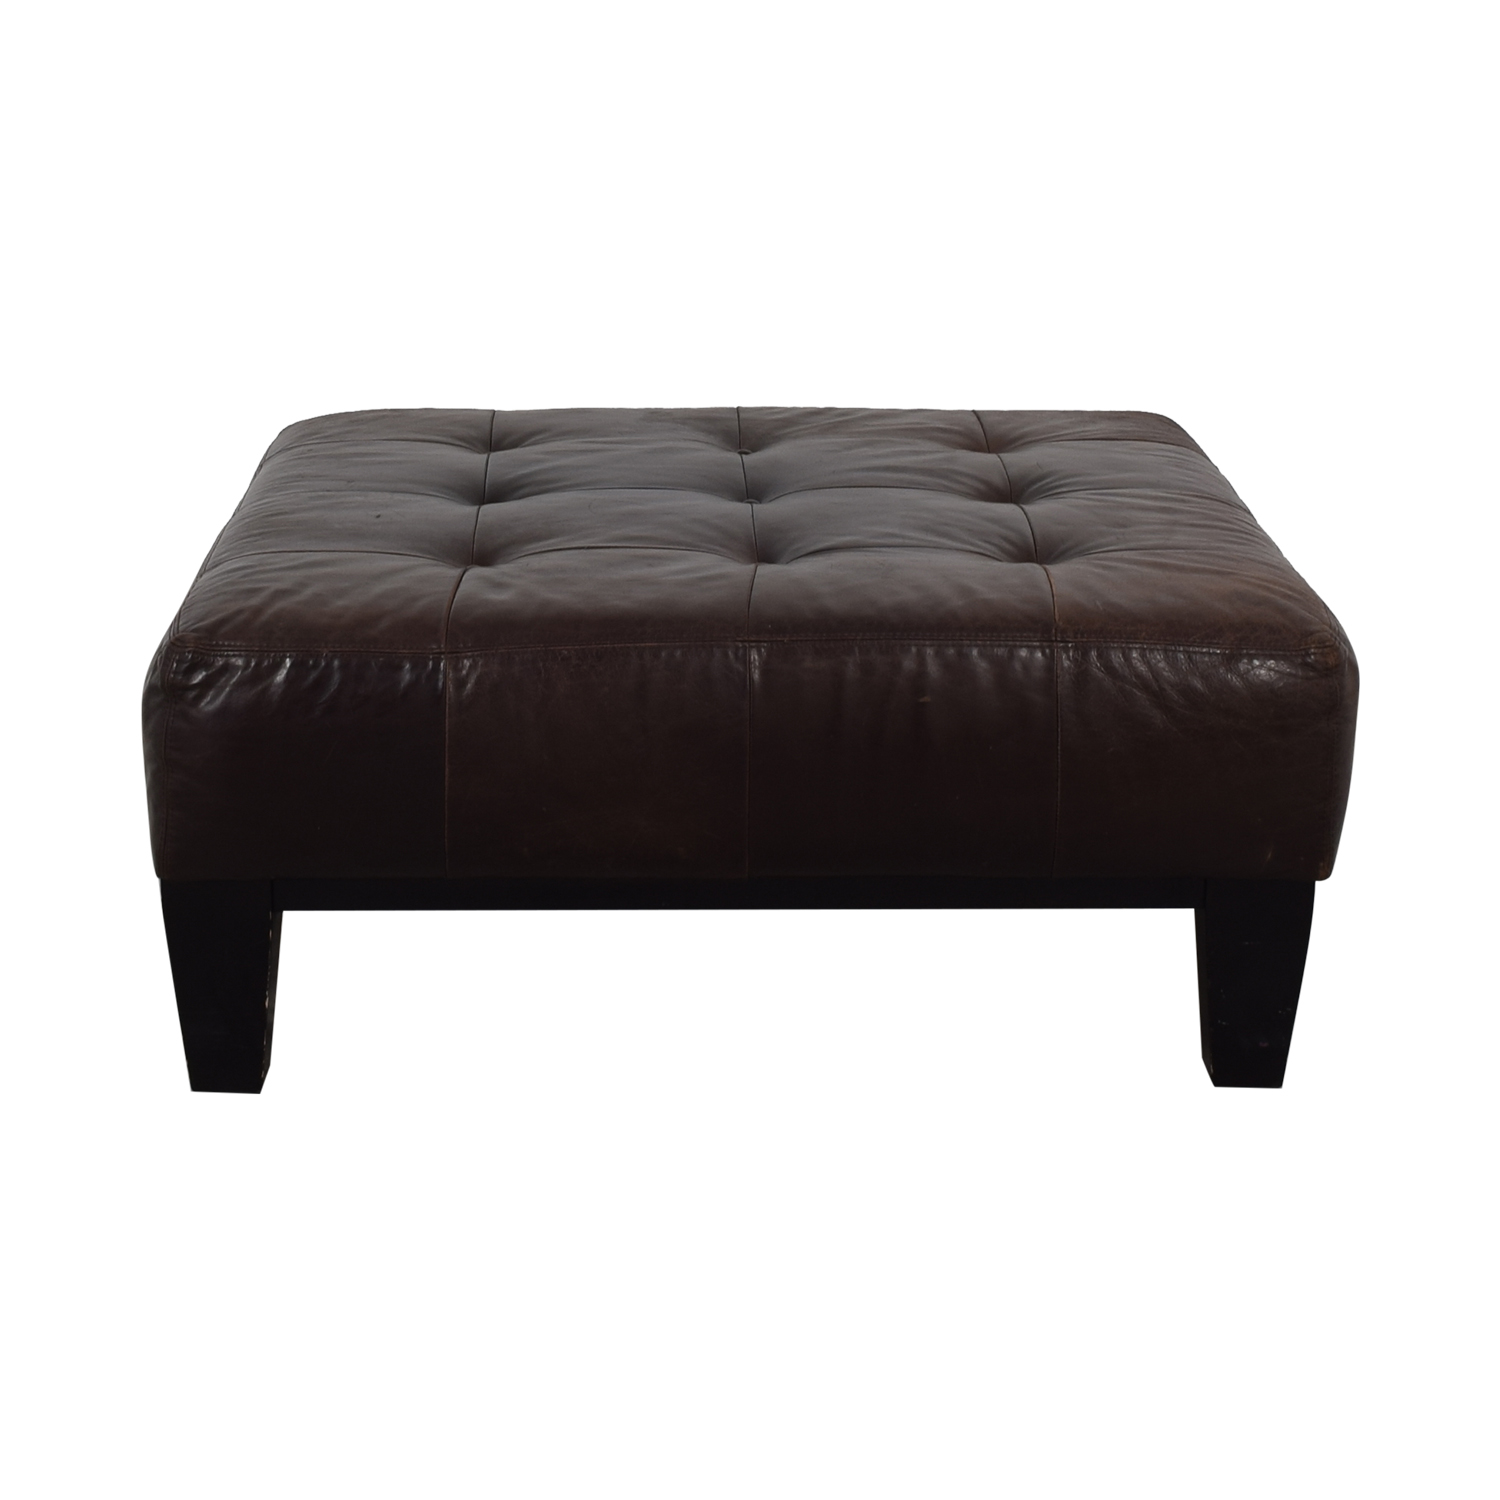 Pottery Barn Pottery Barn Brown Tufted Ottoman dimensions